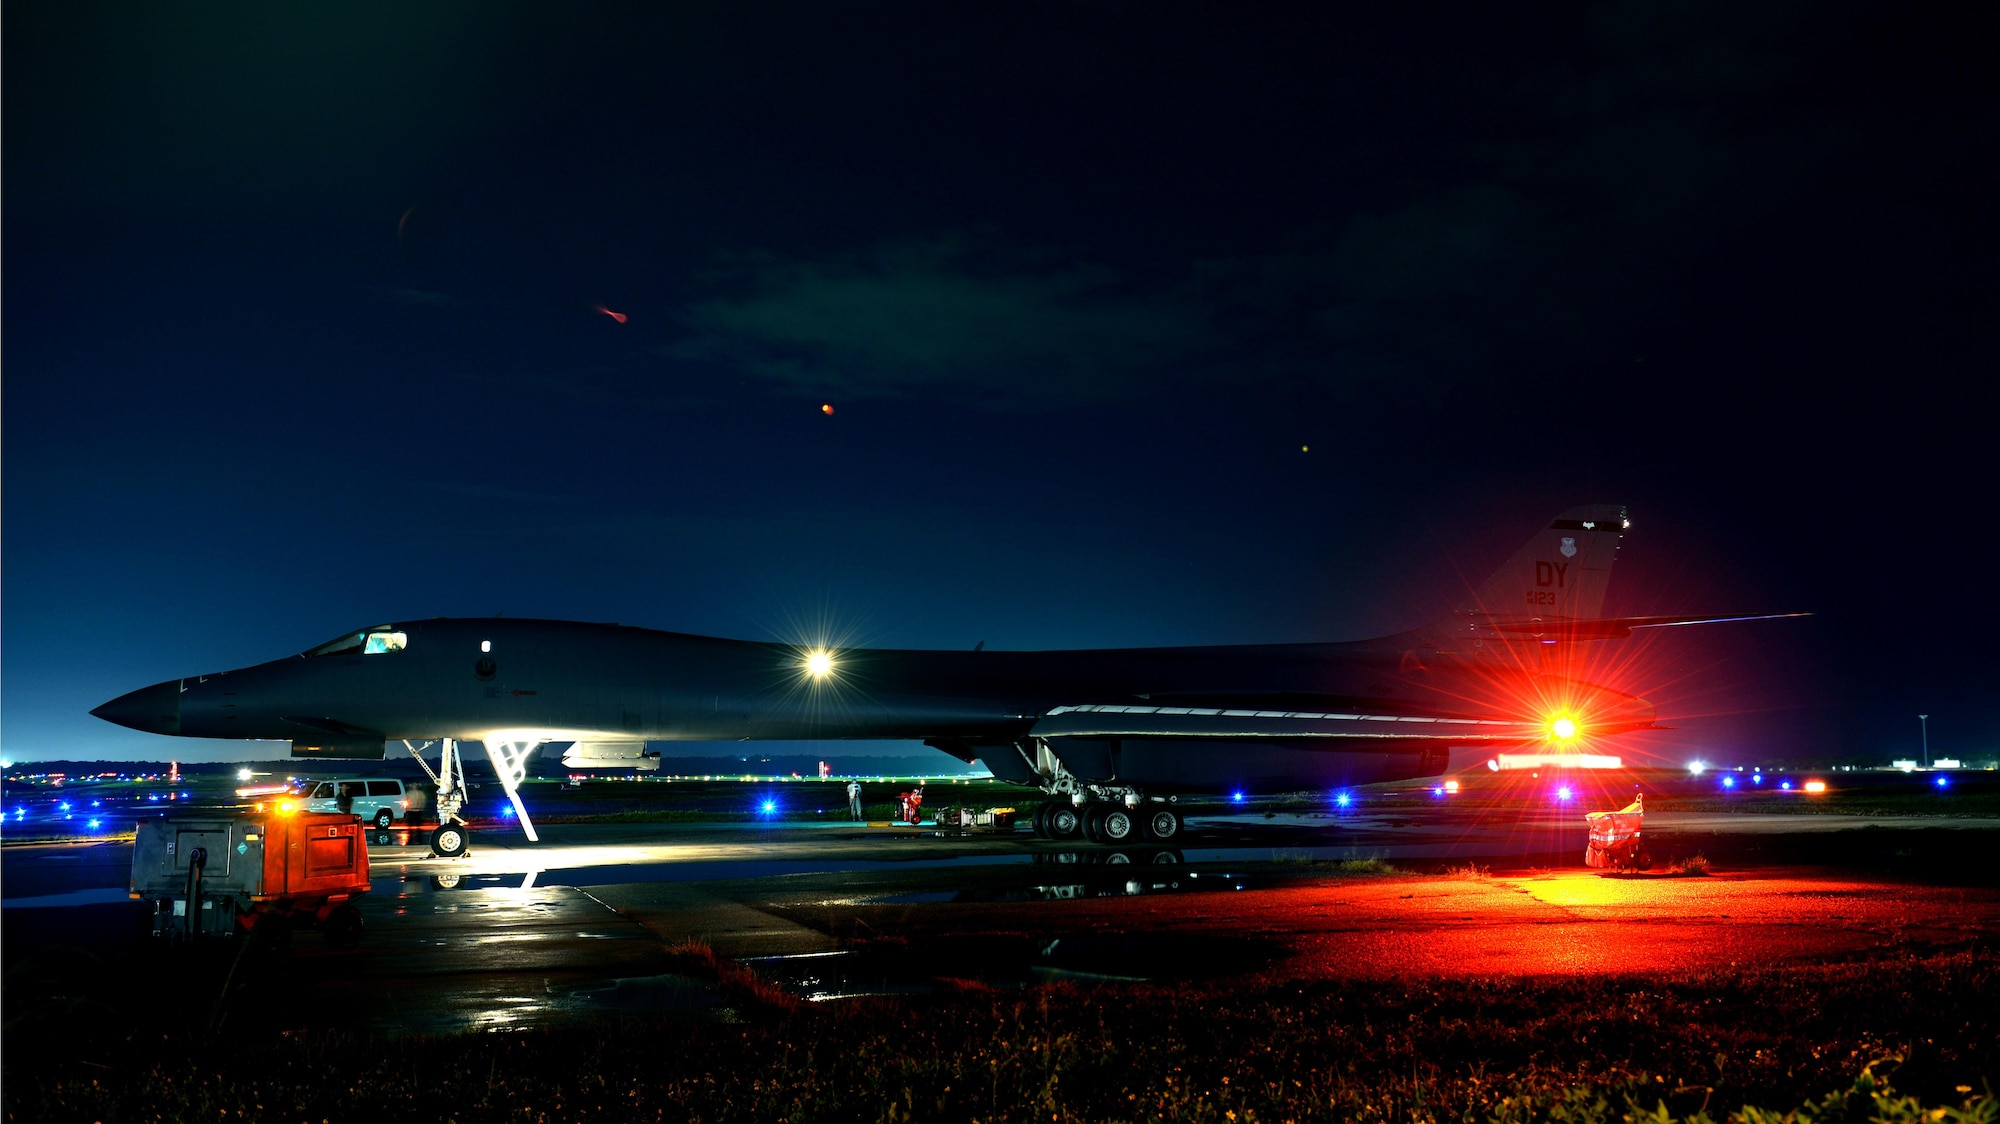 A U.S. Air Force B-1B Lancer assigned to the 9th Expeditionary Bomb Squadron, deployed from Dyess Air Force Base, Texas, prepares for a 10-hour mission from Andersen Air Force Base, Guam, into Japanese airspace and over the Korean Peninsula, July 30, 2017. The B-1s flew with Japan Air Self-Defense Force F-2 fighter jets in Japanese airspace, then proceeded over the Korean Peninsula and were joined by South Korean F-15 fighter jets. The aircrews practiced intercept and formation training during the mission, enabling them to improve their combined capabilities and tactical skills, while also strengthening the long standing military-to-military relationships in the Indo-Asia-Pacific. (U.S. Air Force photo/Airman 1st Class Gerald Willis)